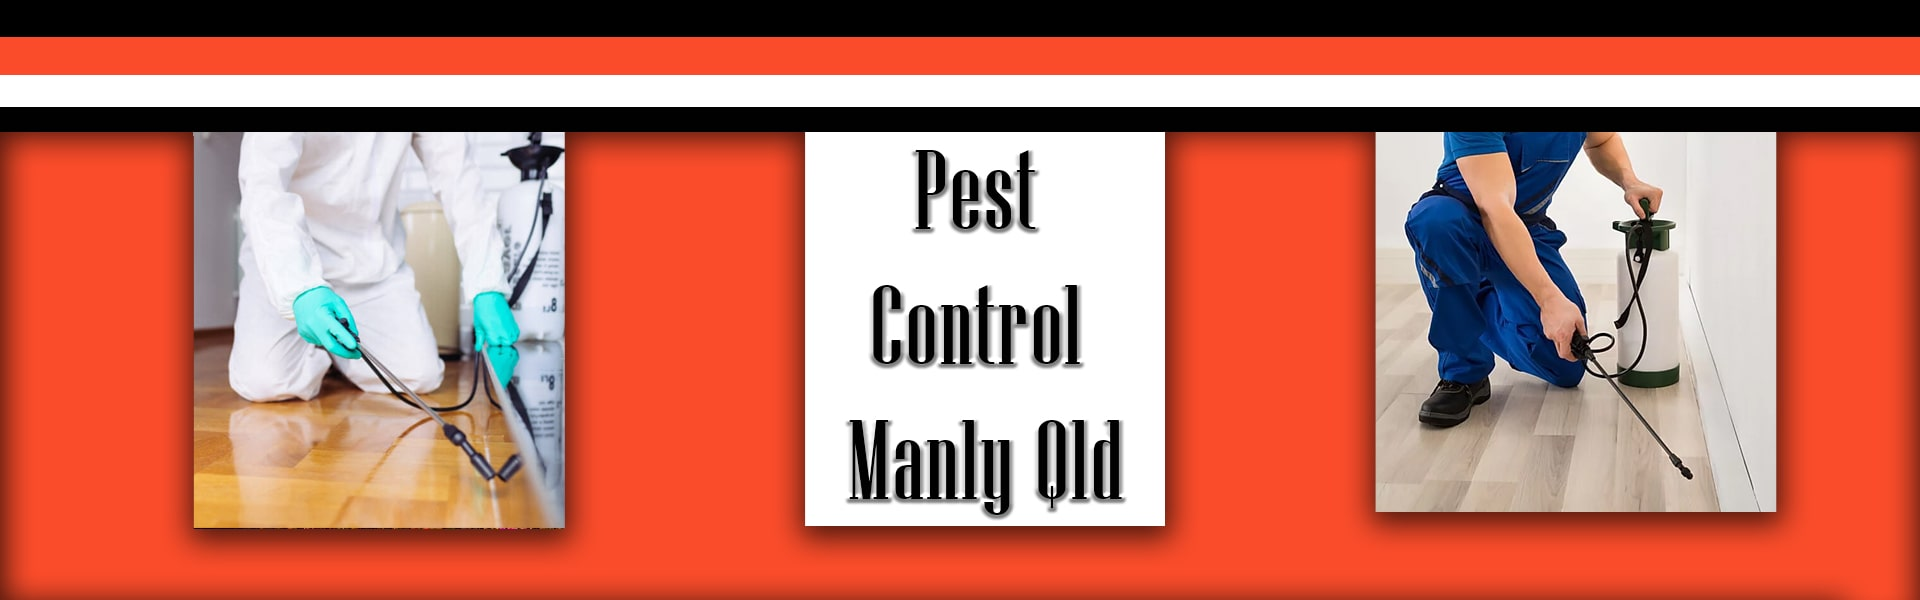 Pest Control manly-qld